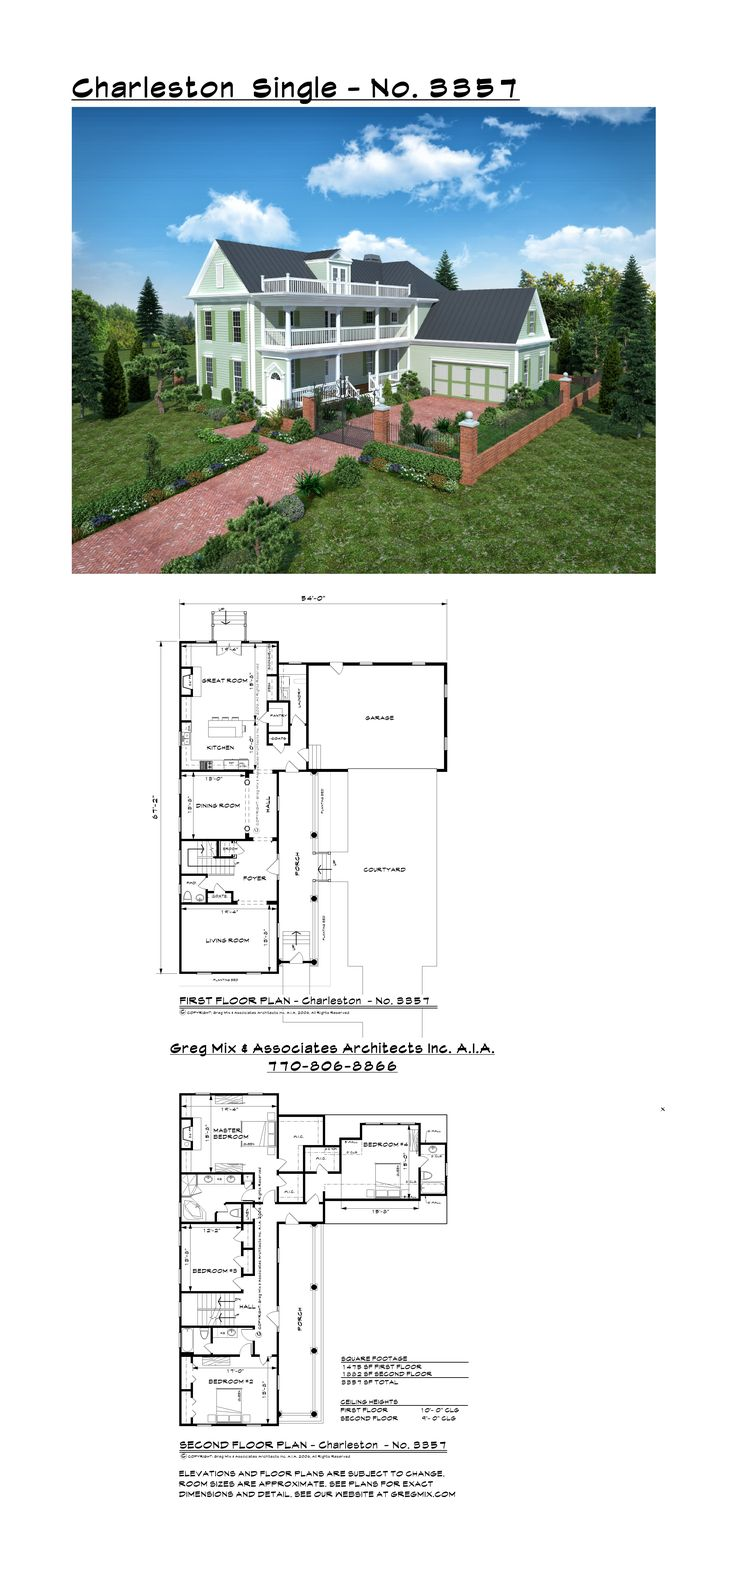 3357 SF Charleston Single style house plans. Contact GregMix@comcast.net